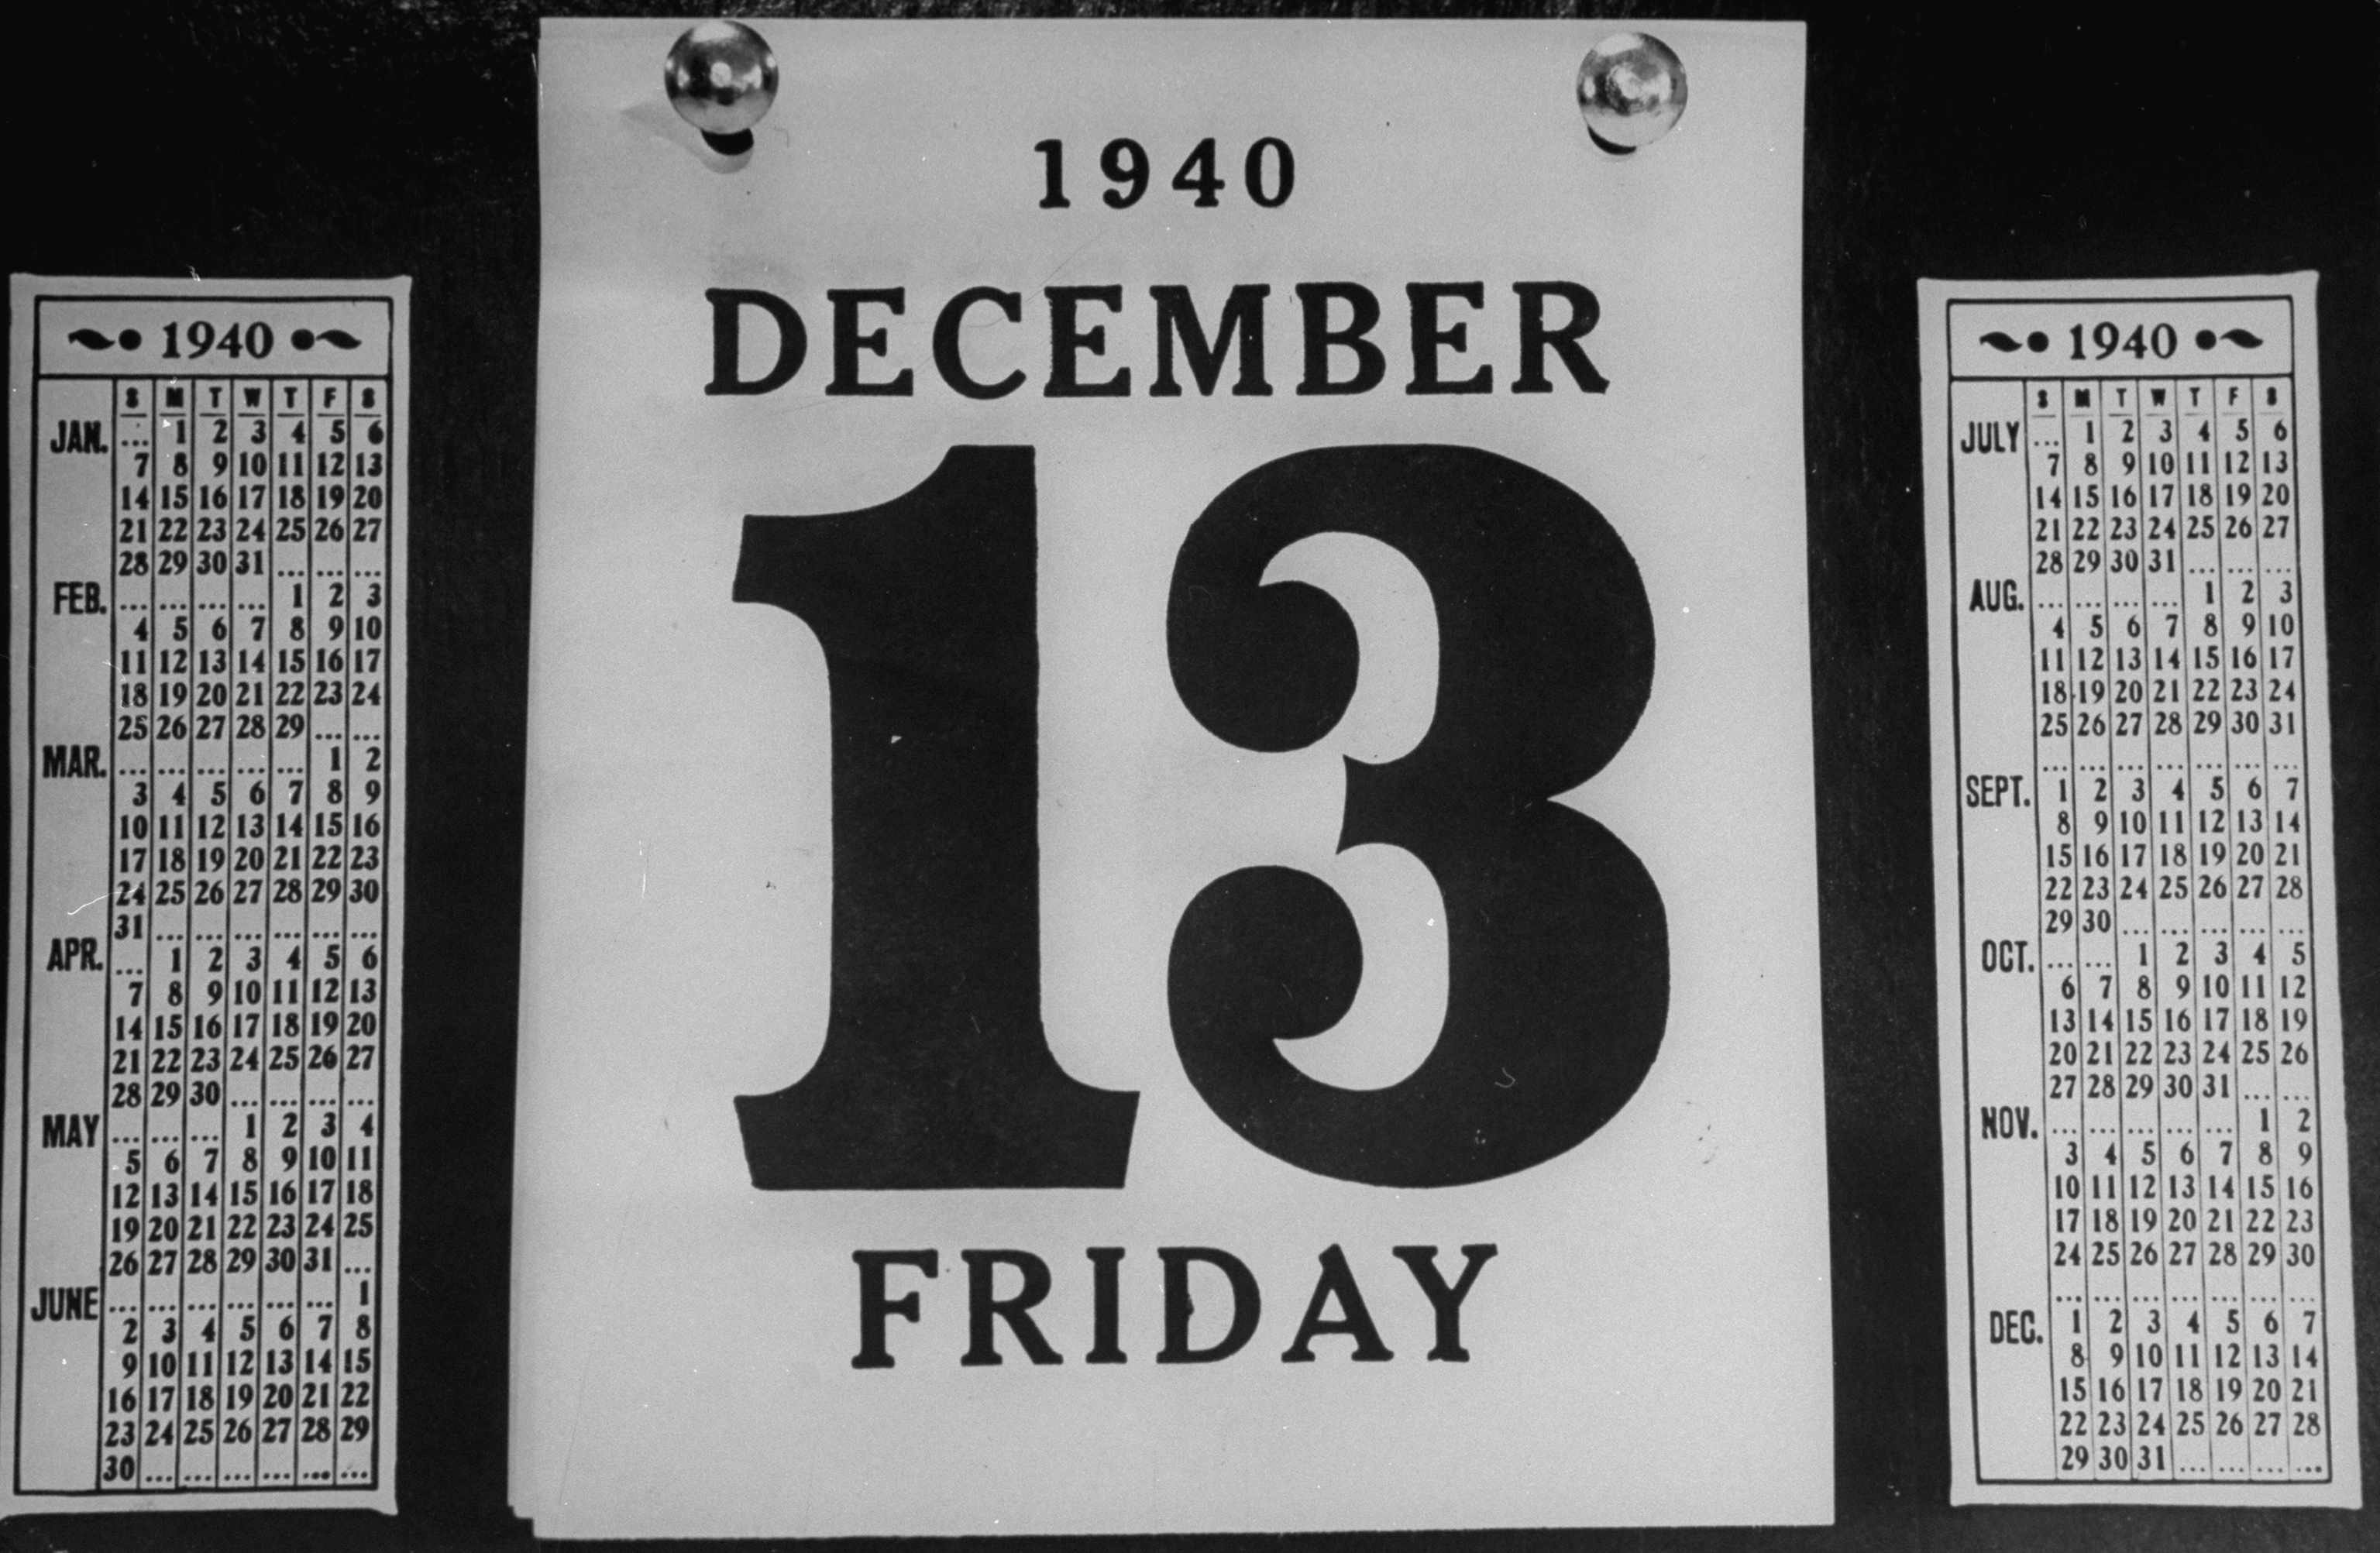 A view of a calander showing the date, Friday the 13th. (Photo by William C. Shrout/The LIFE Picture Collection/Getty Images)